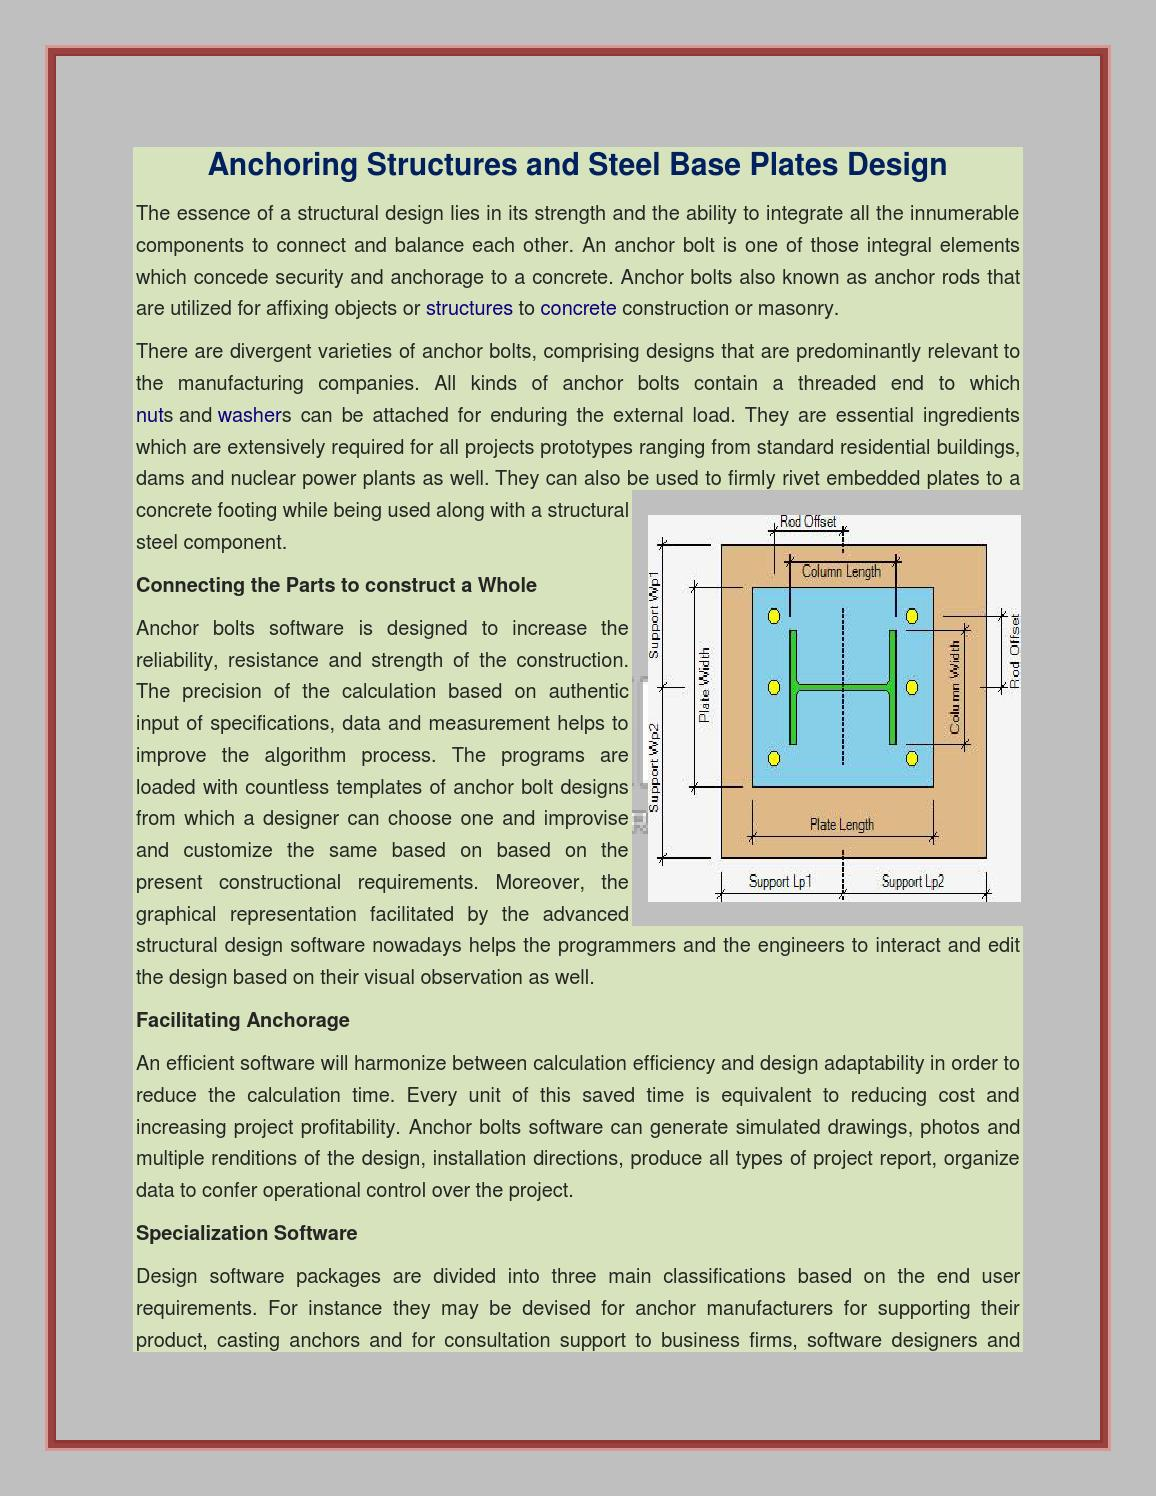 Anchoring Structures and Steel Base Plates Design by ASDIP